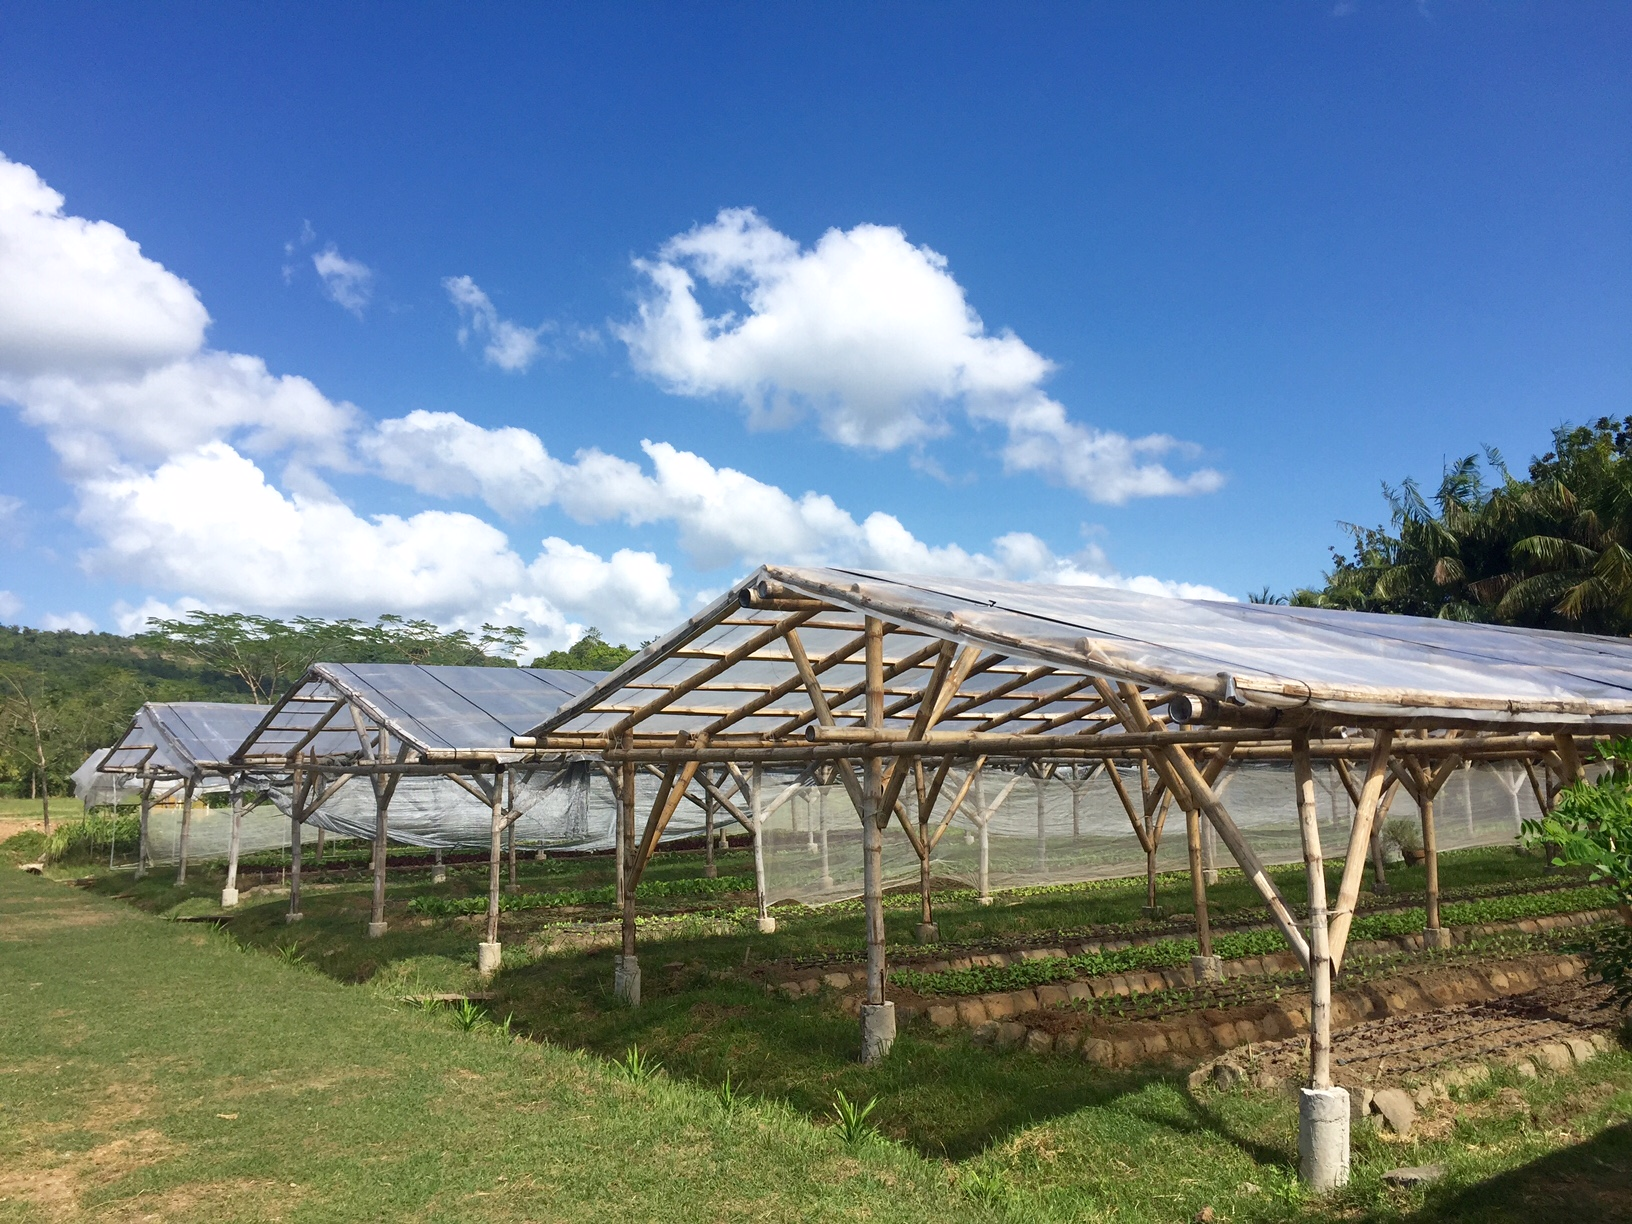 At the Lolo Doc Farm you can purchase freshly picked organic leafy vegetables and herbs.